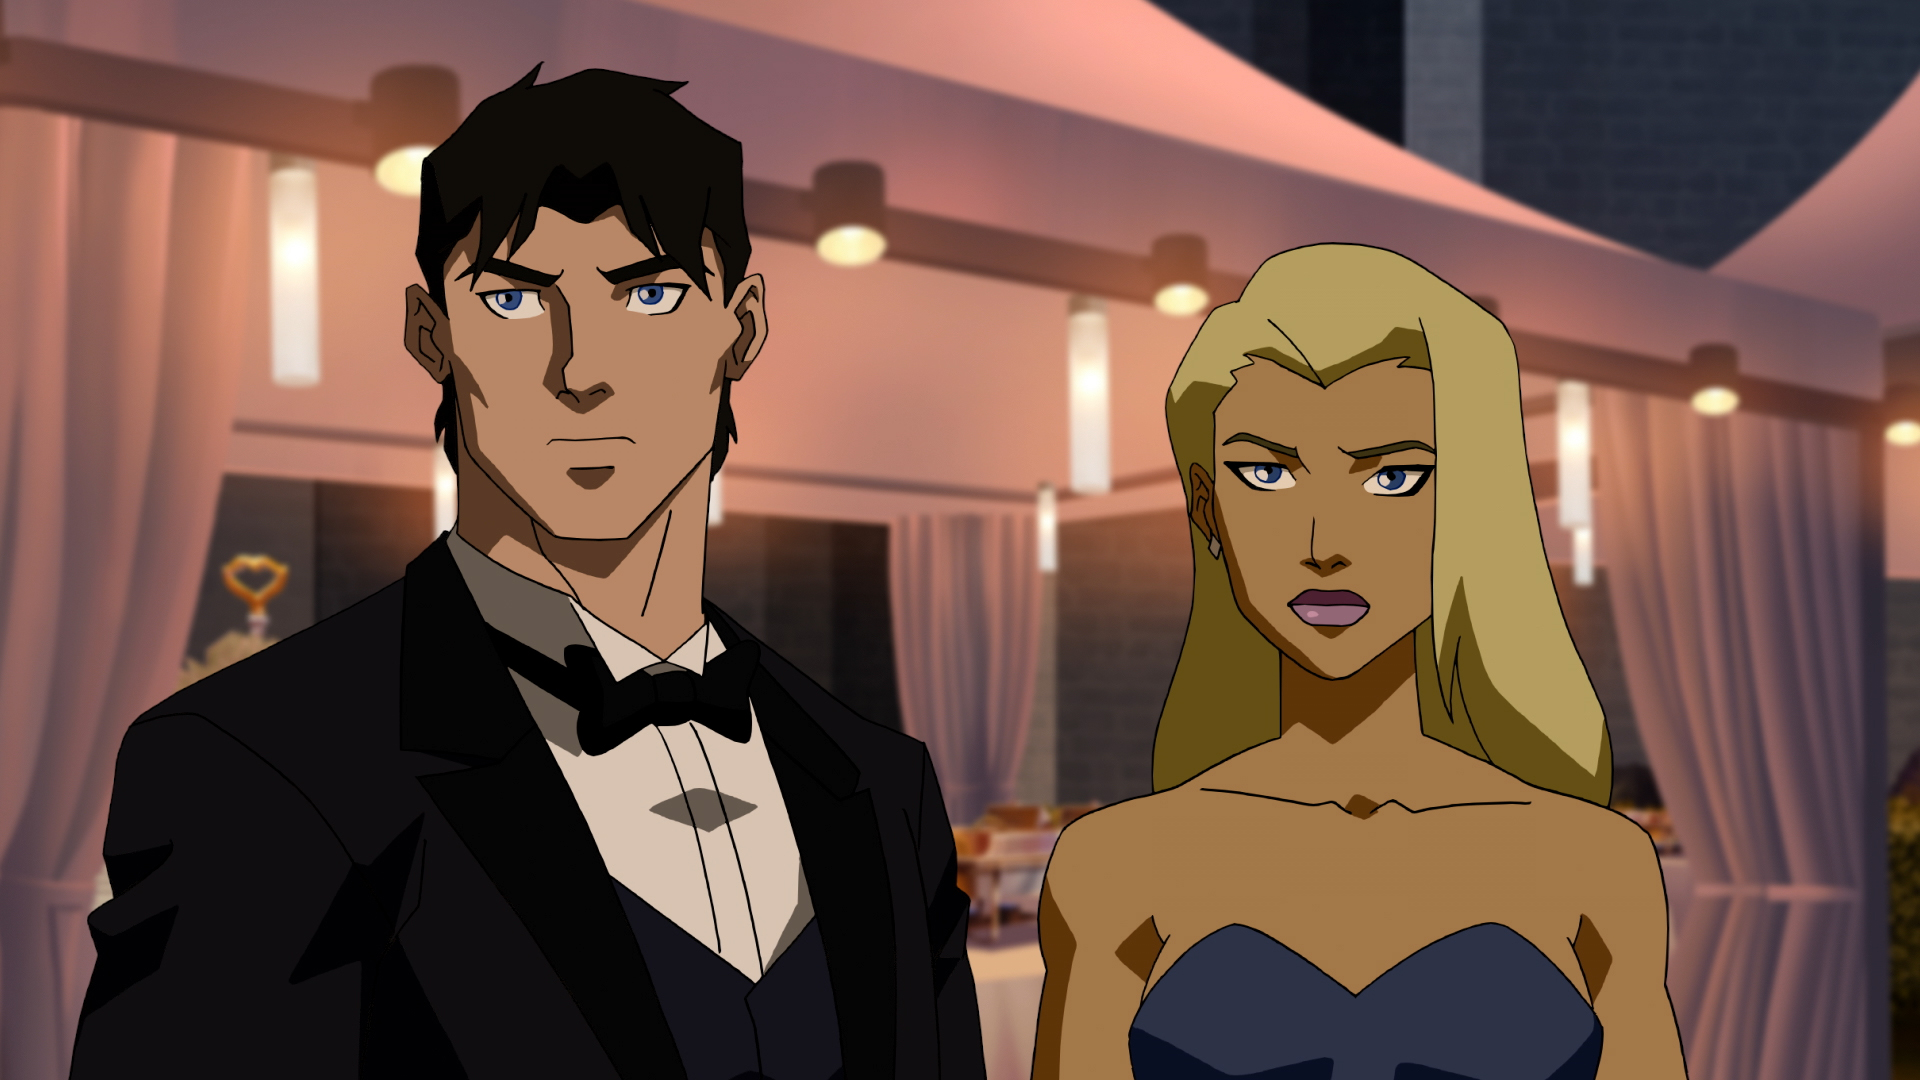 Young justice outsiders season 3 episode 2 recap royal we - Pictures of nightwing from young justice ...